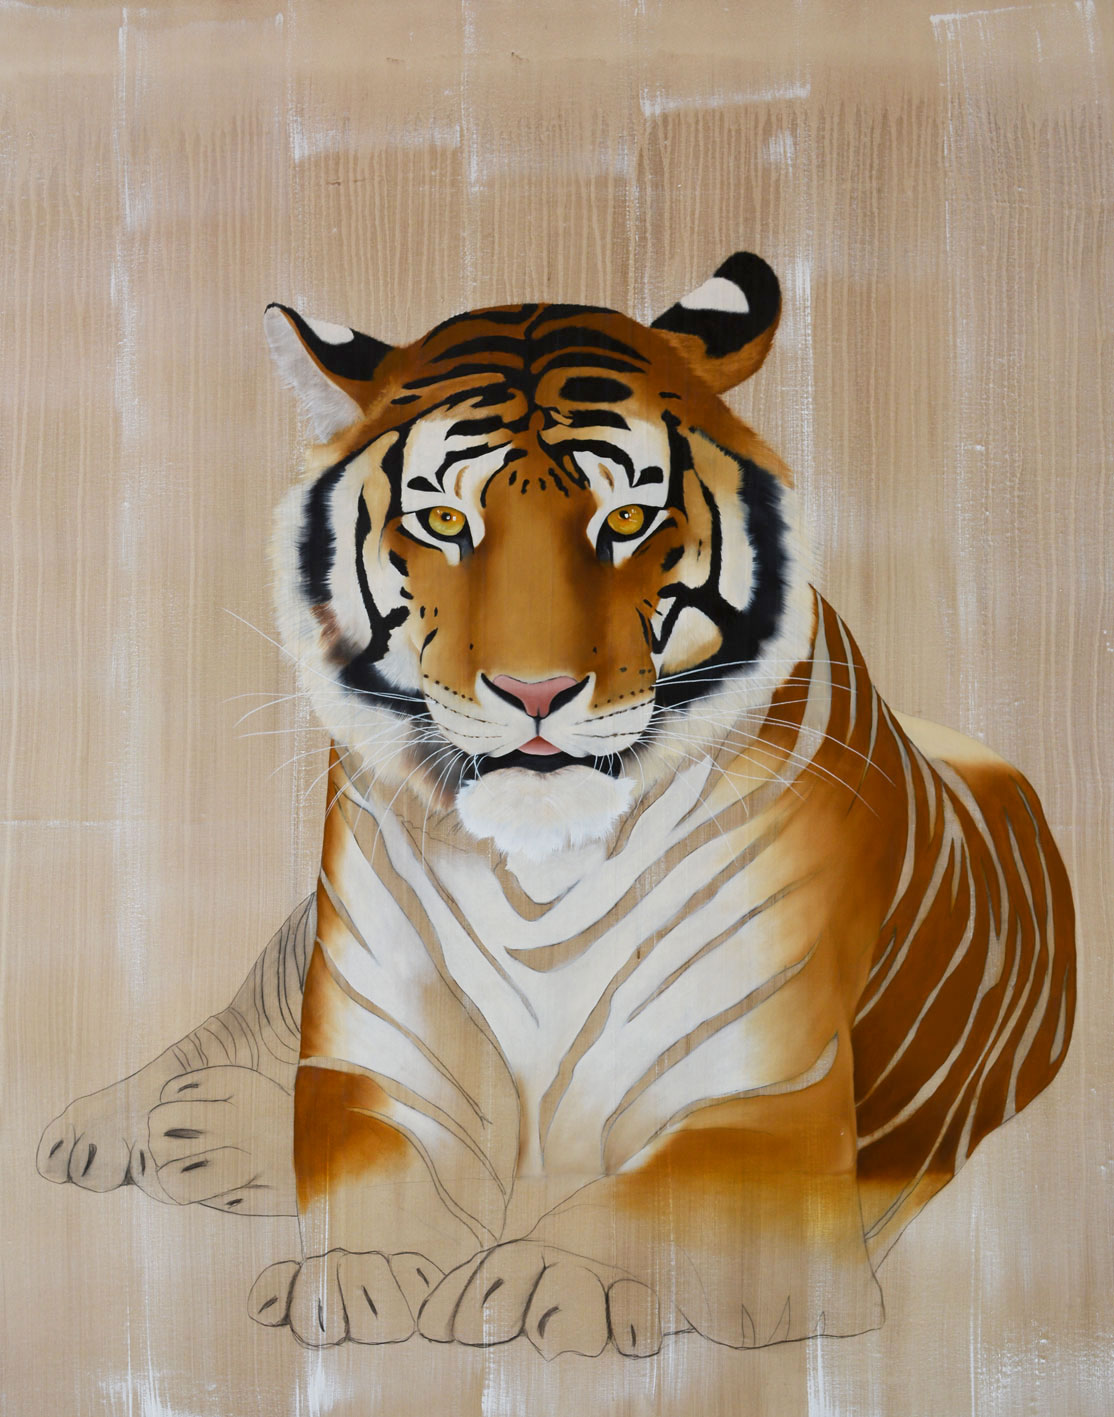 PANTHERA TIGRIS panthera-tigris-tiger-royal-delete?-threatened-endangered-extinction-thierry-bisch Animal painting by Thierry Bisch pets wildlife artist painter canvas art decoration